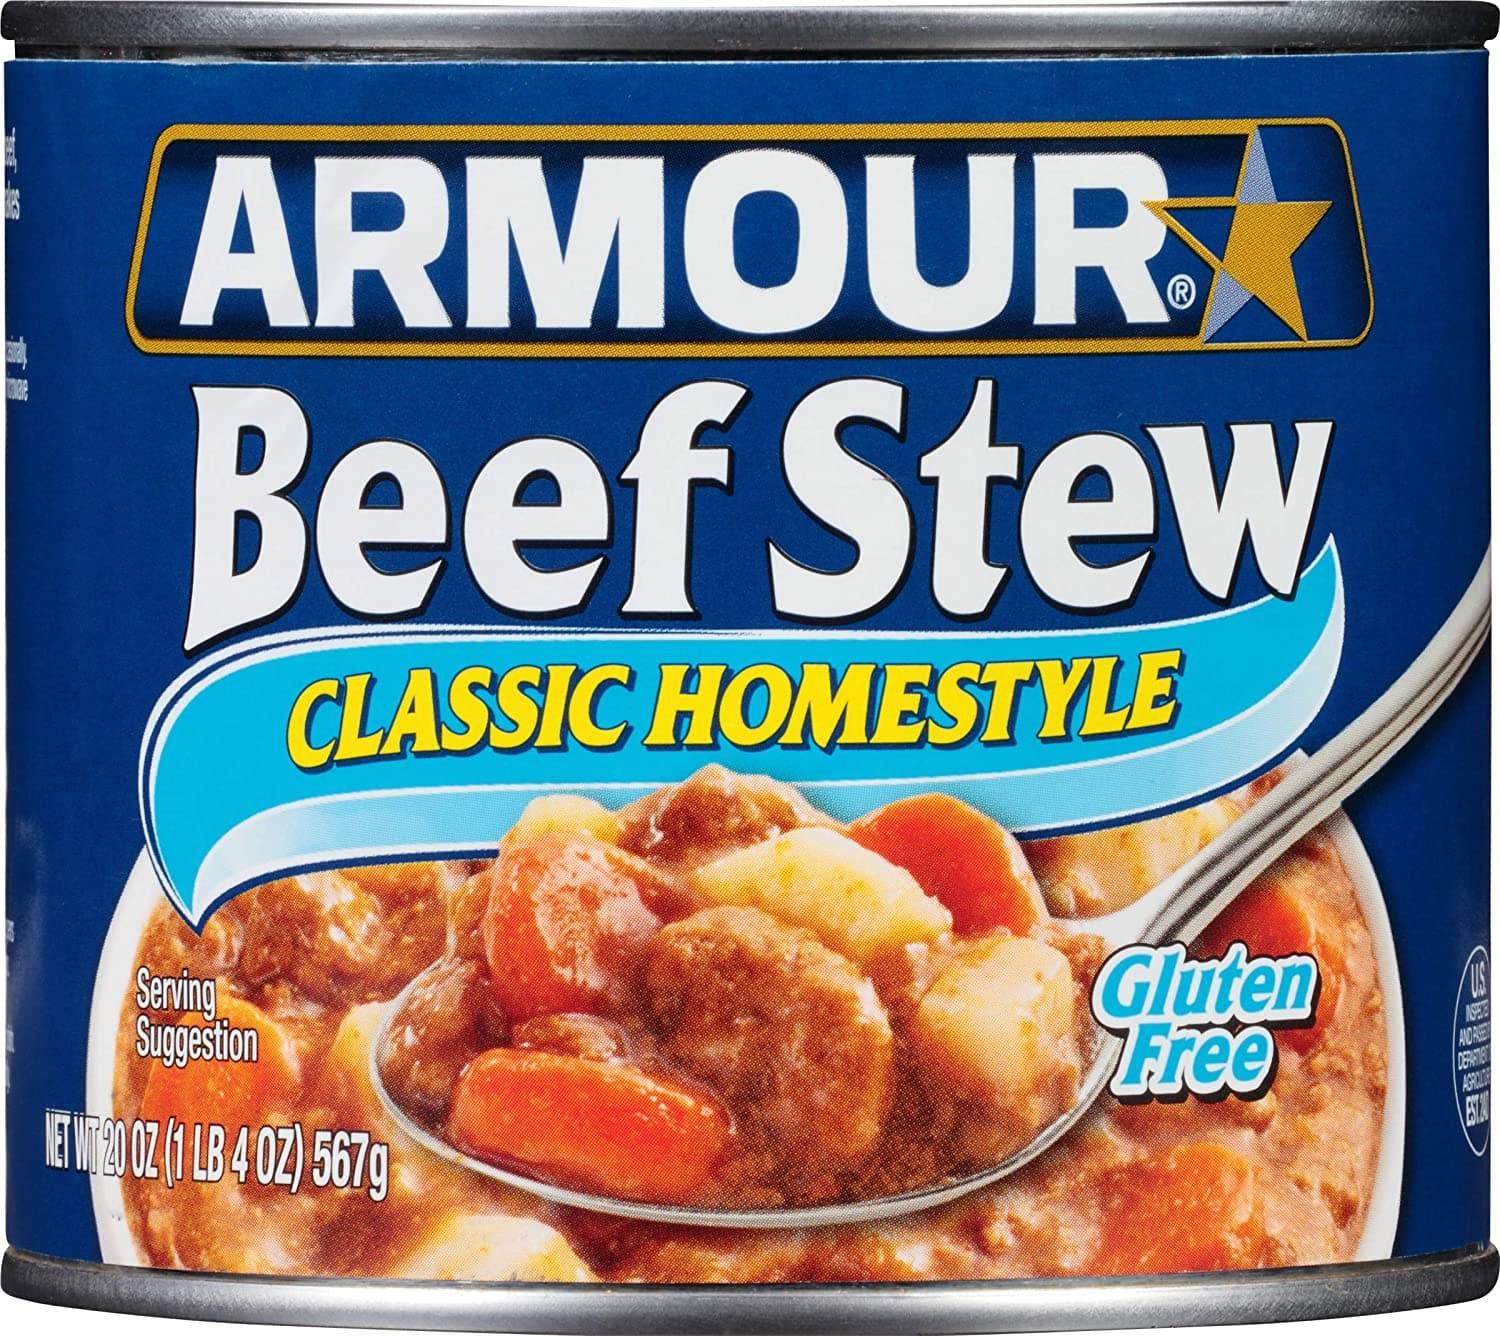 Armour Star Classic Homestyle Beef Stew, 20 oz. (Pack of 12) $17.01 w/15% S&S $19.62 w/5% S&S